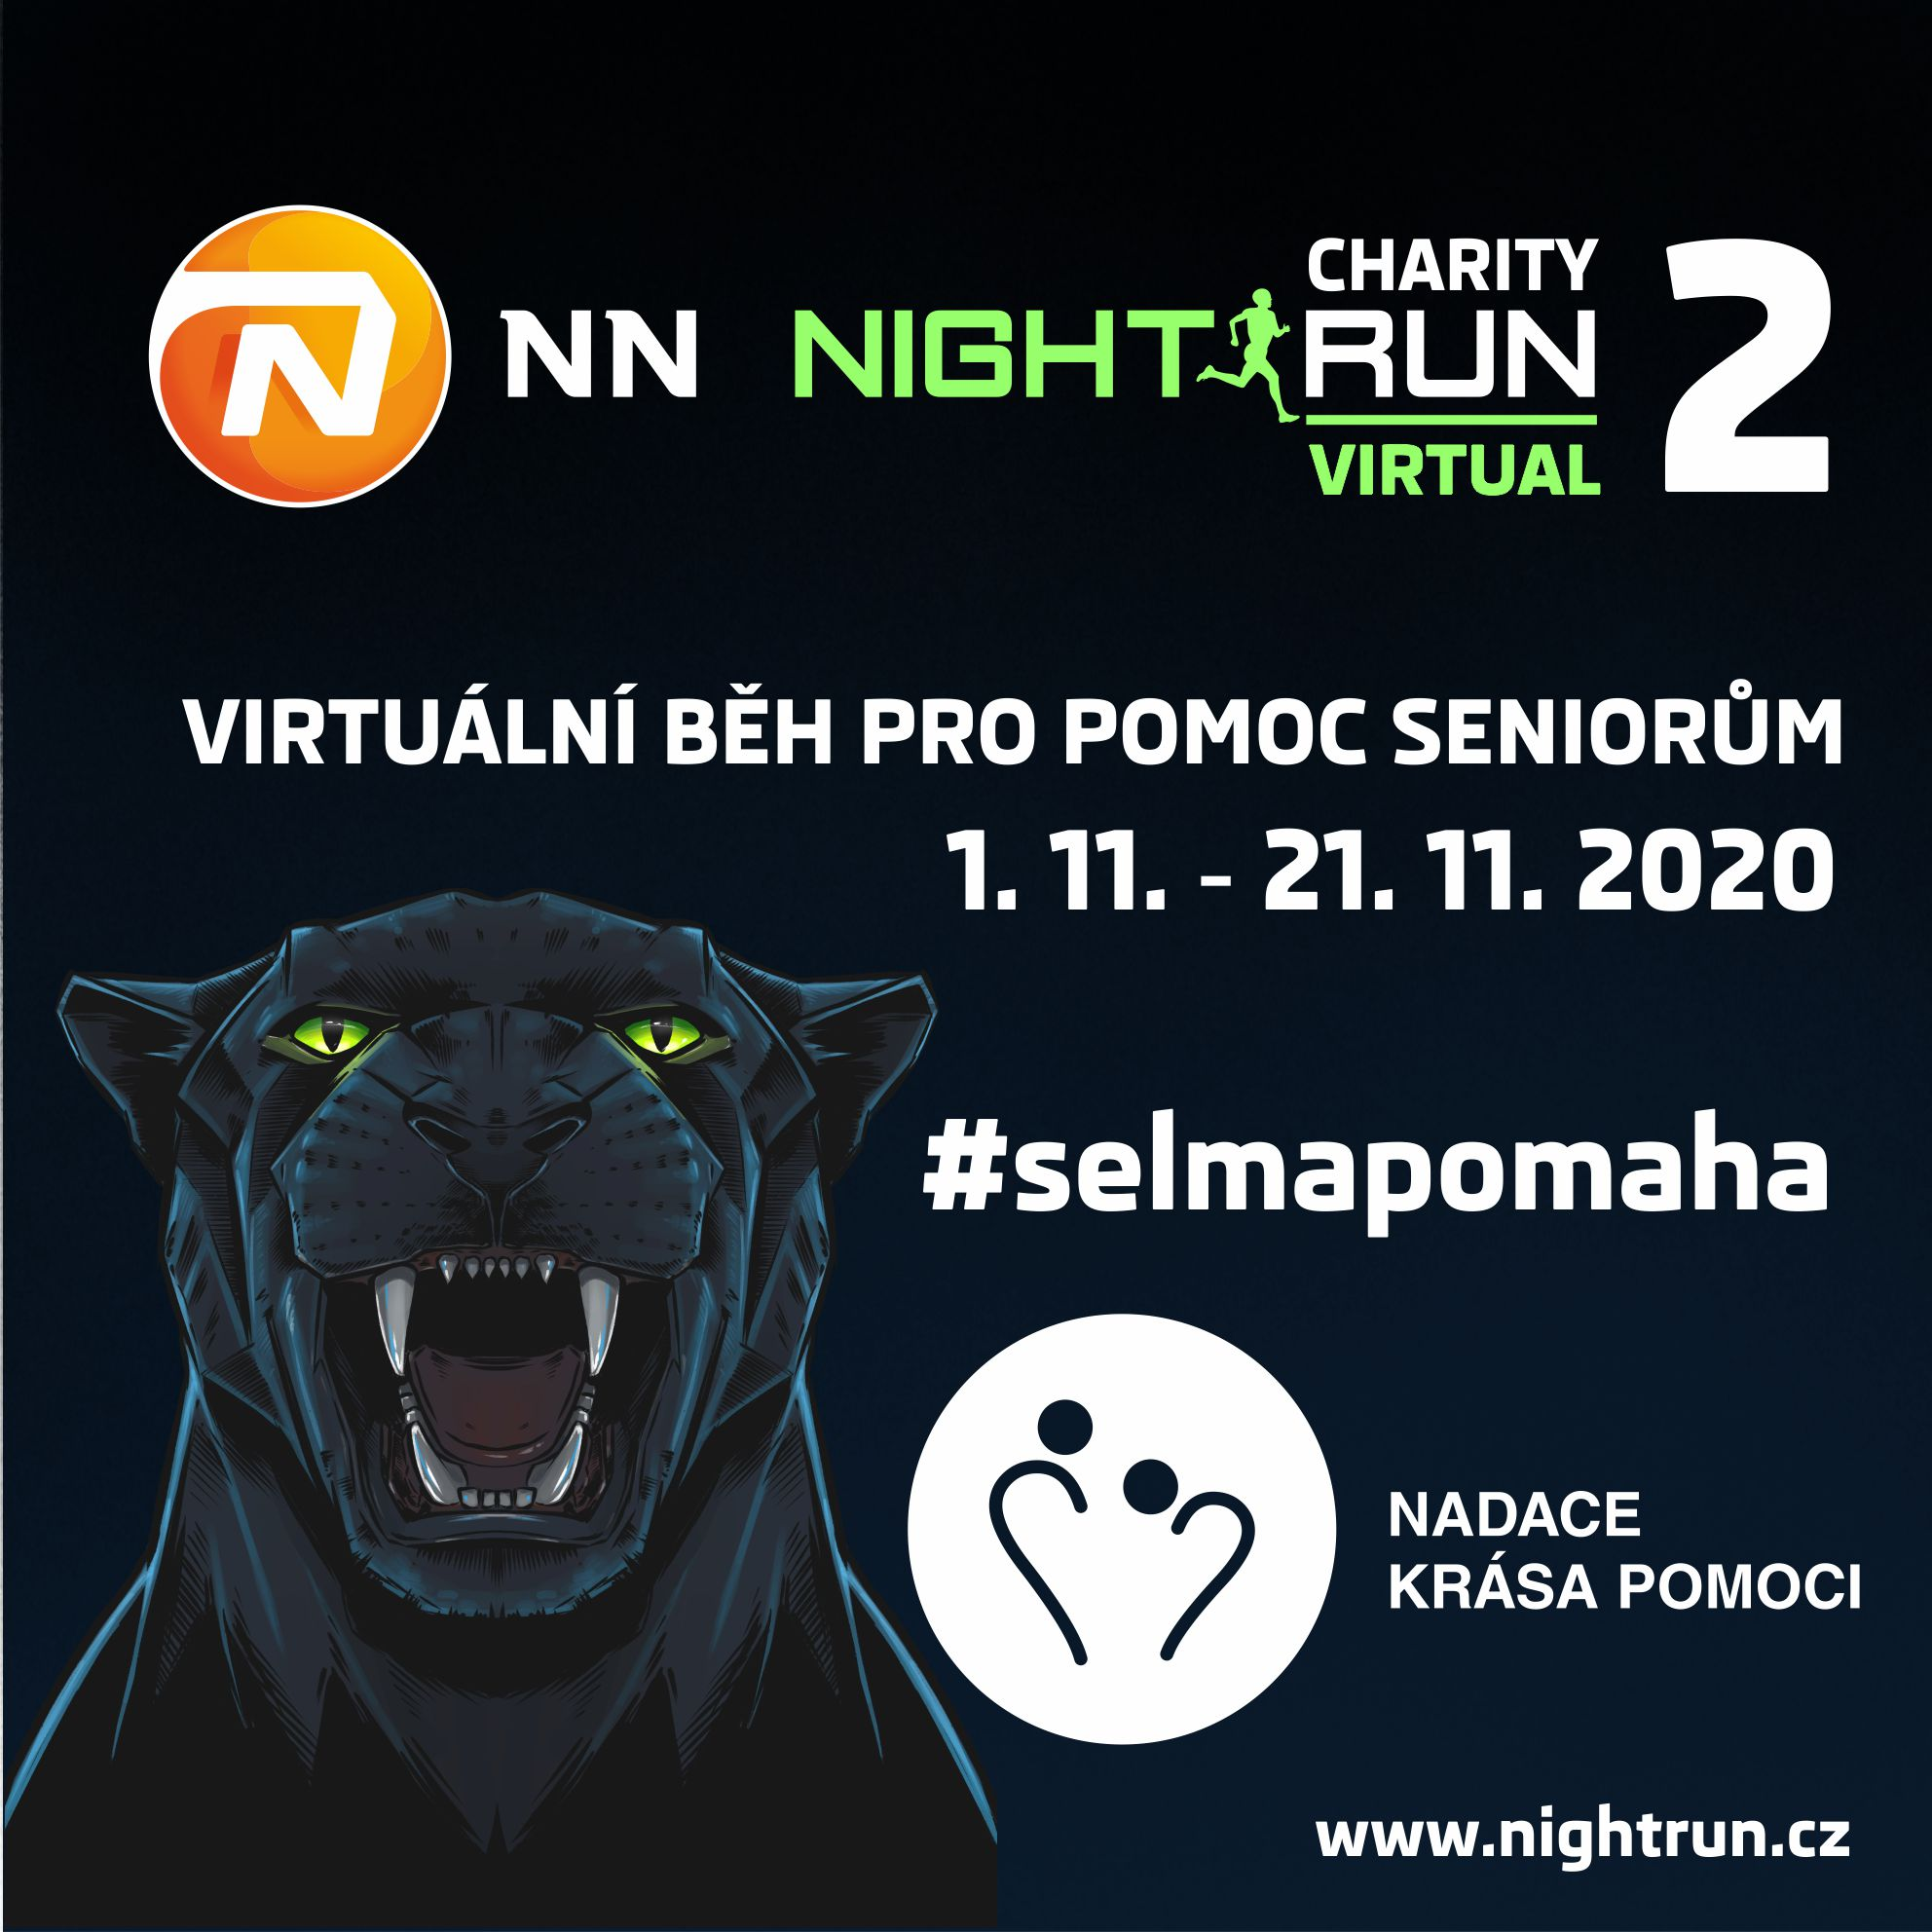 CHARITY NN NIGHT RUN 2